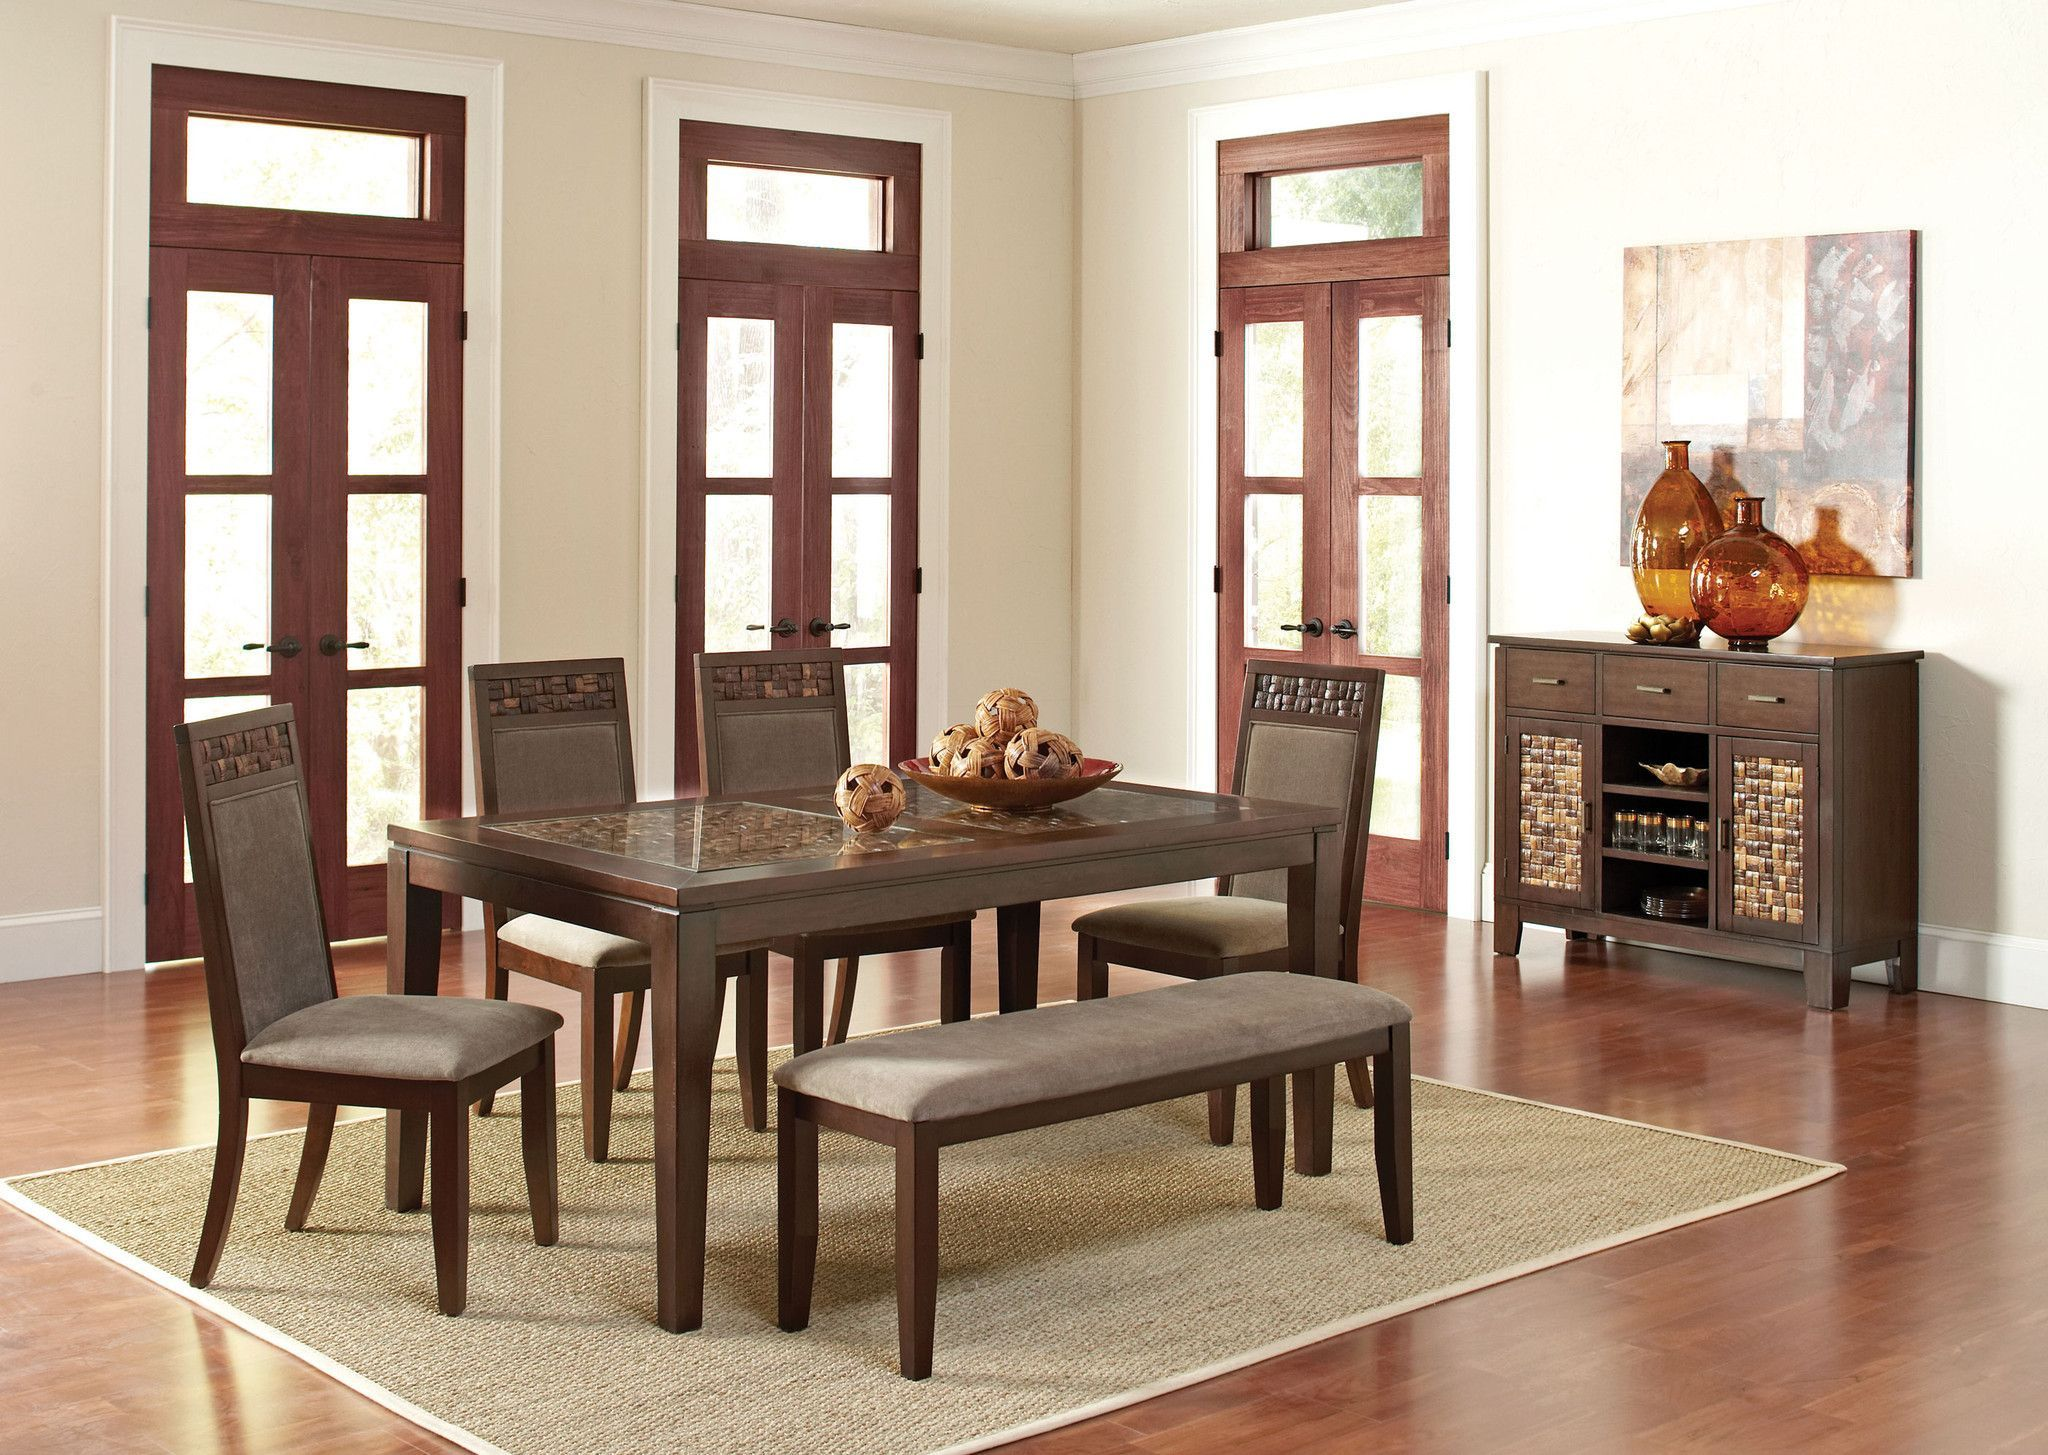 Trinidad Dining Table 6 Chairs CO 105491 895